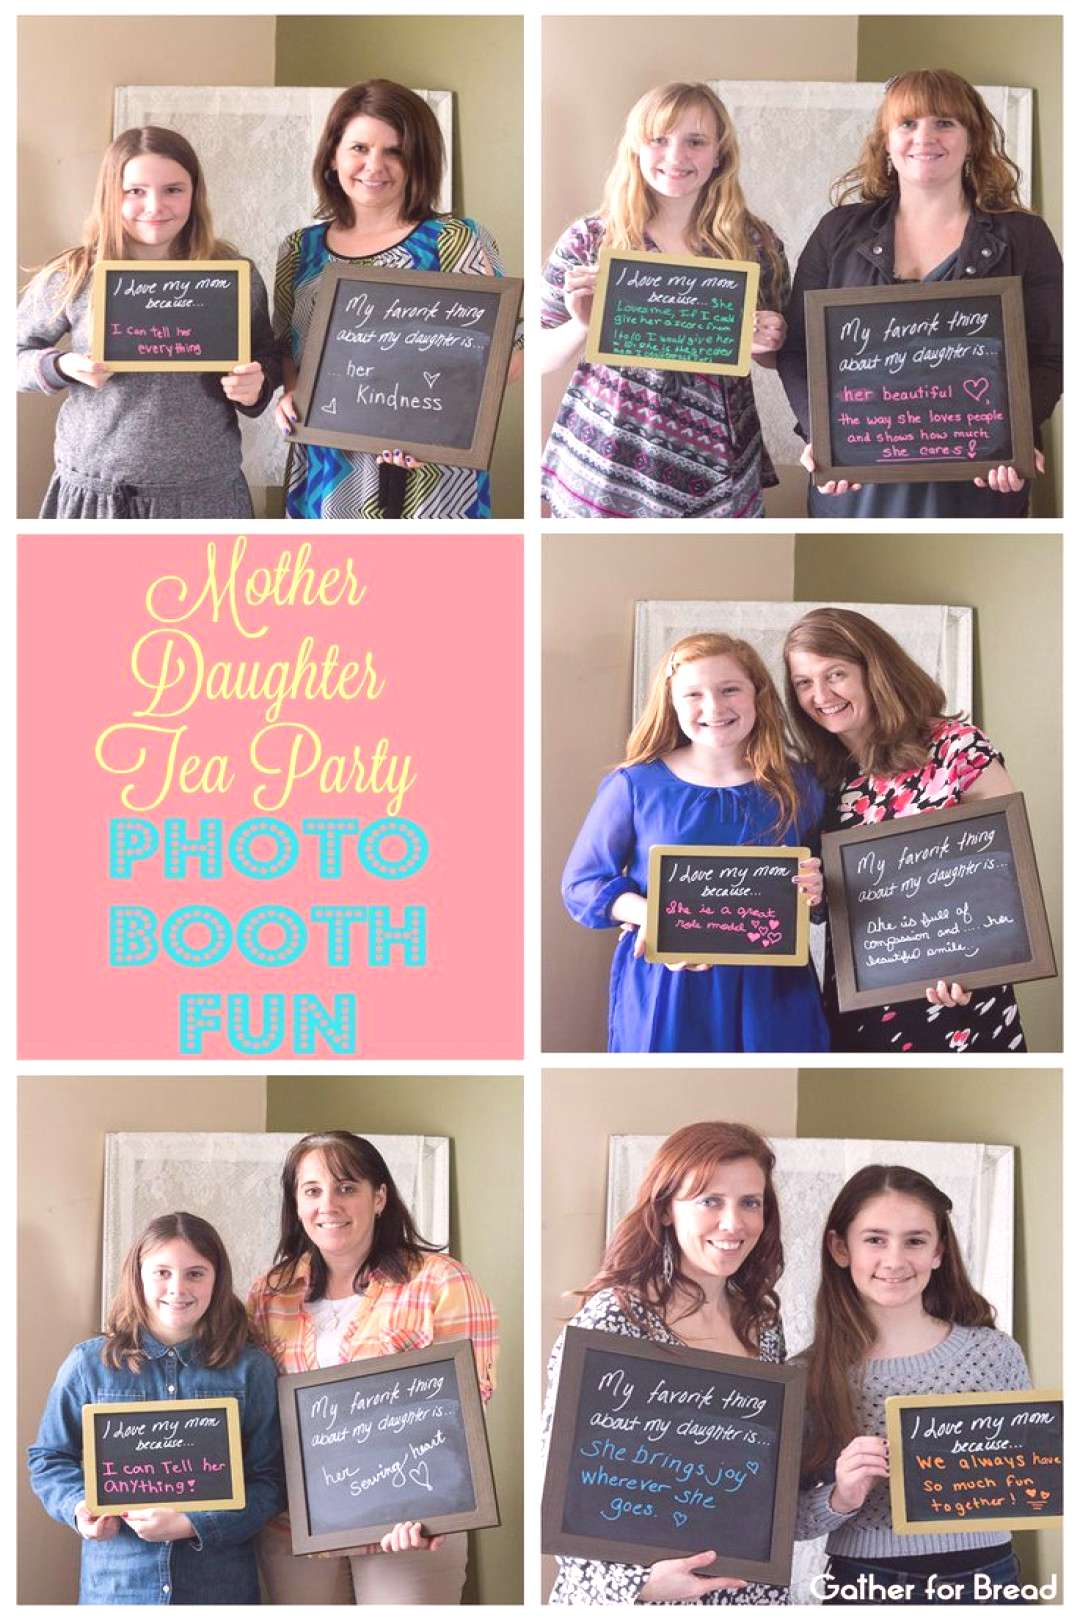 Mother Daughter Tea Party Photo Booth Fun